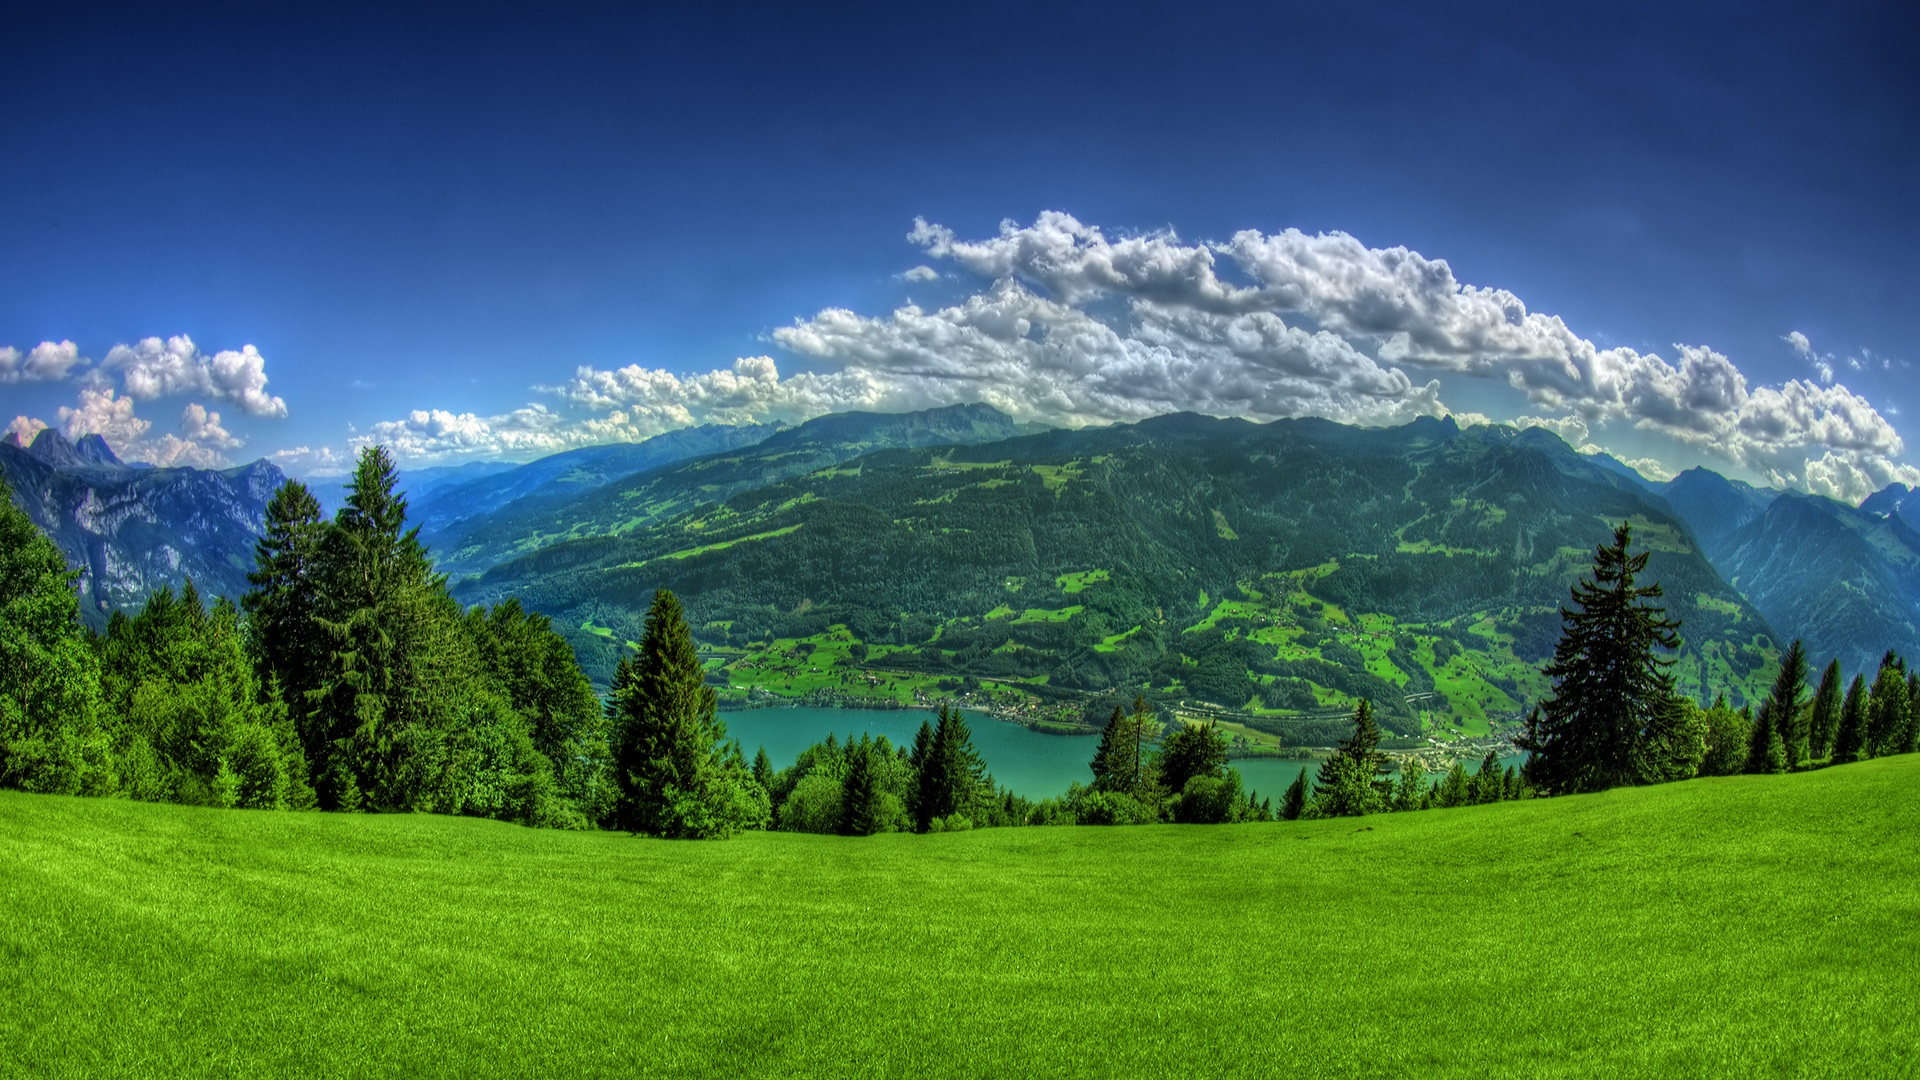 Landscape Backgrounds Wallpaper